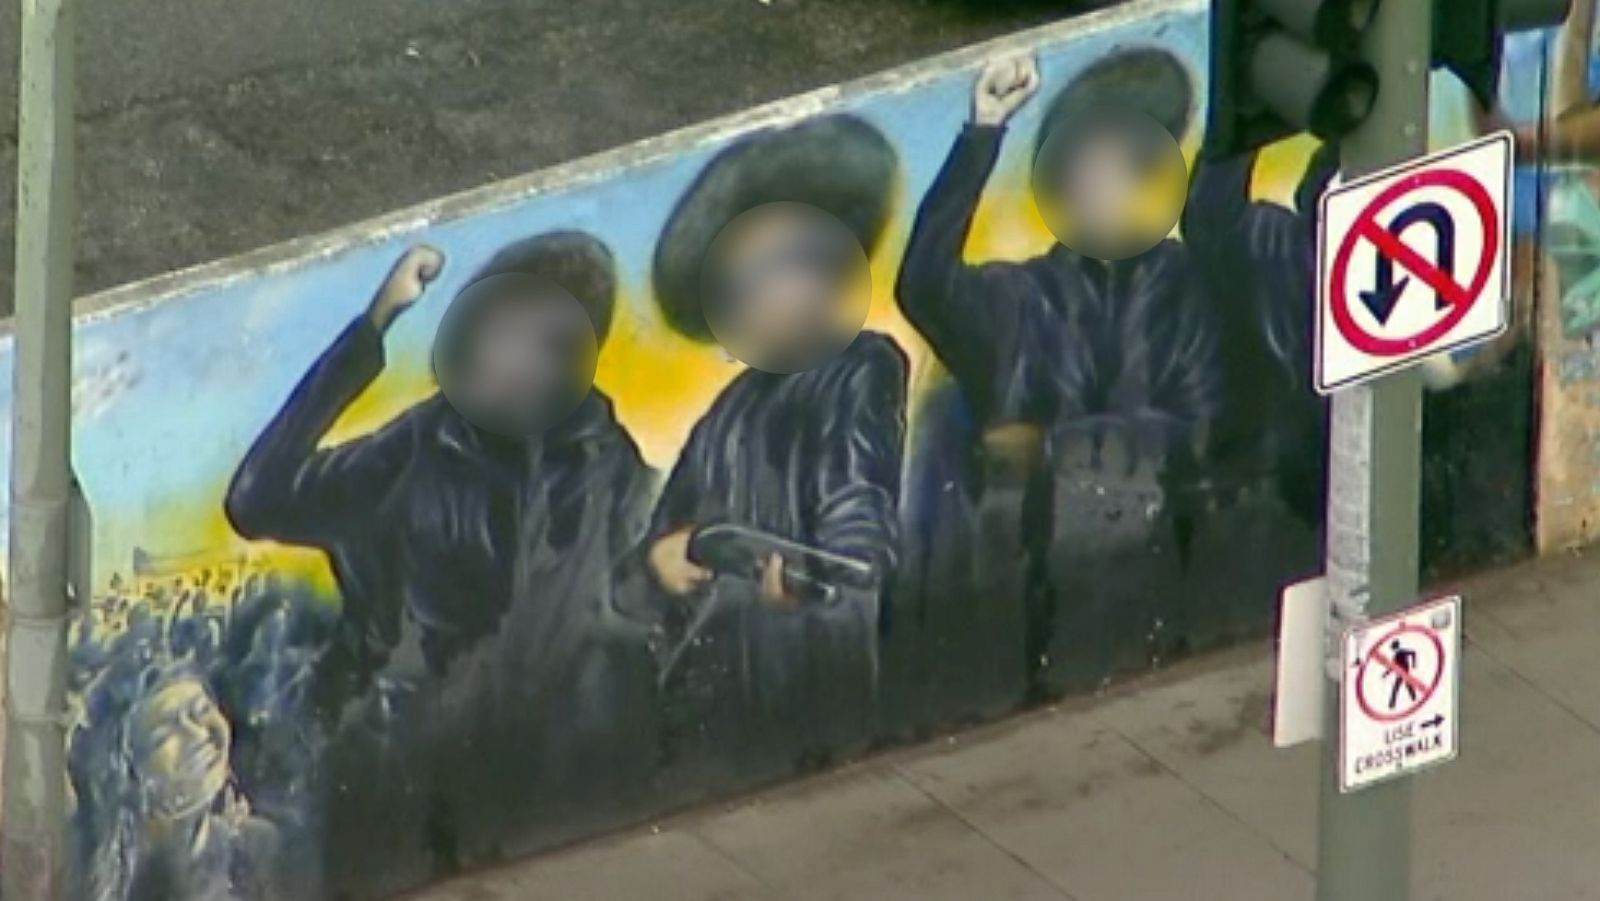 african american mural vandalized with swastikas los angeles police